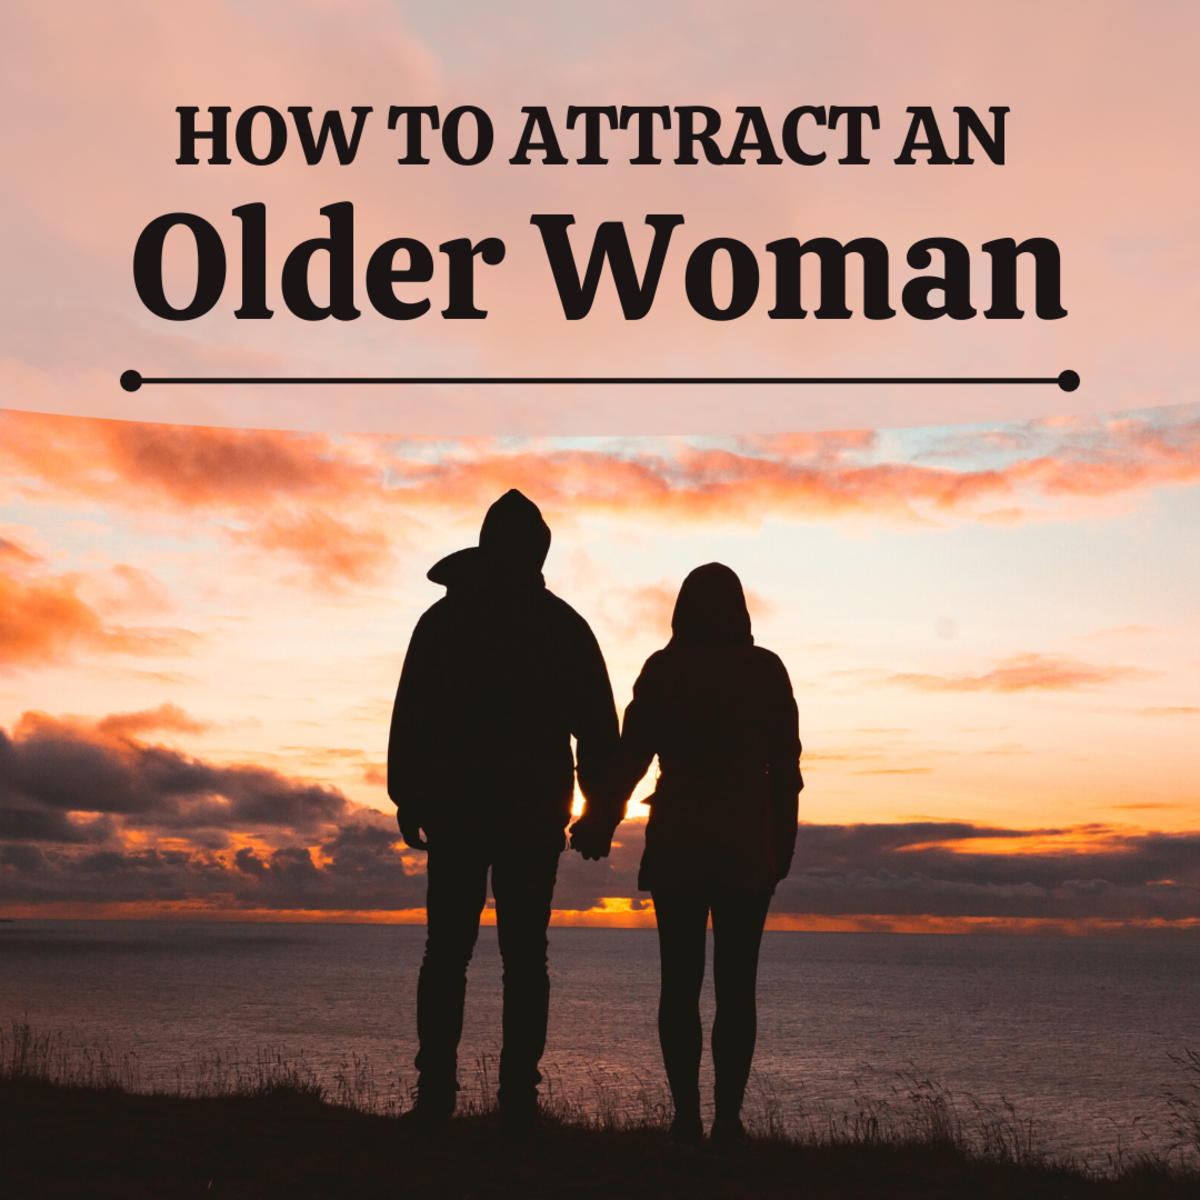 Pining after an older woman? Here are some tips and tricks that will surely help you get and keep her attention!